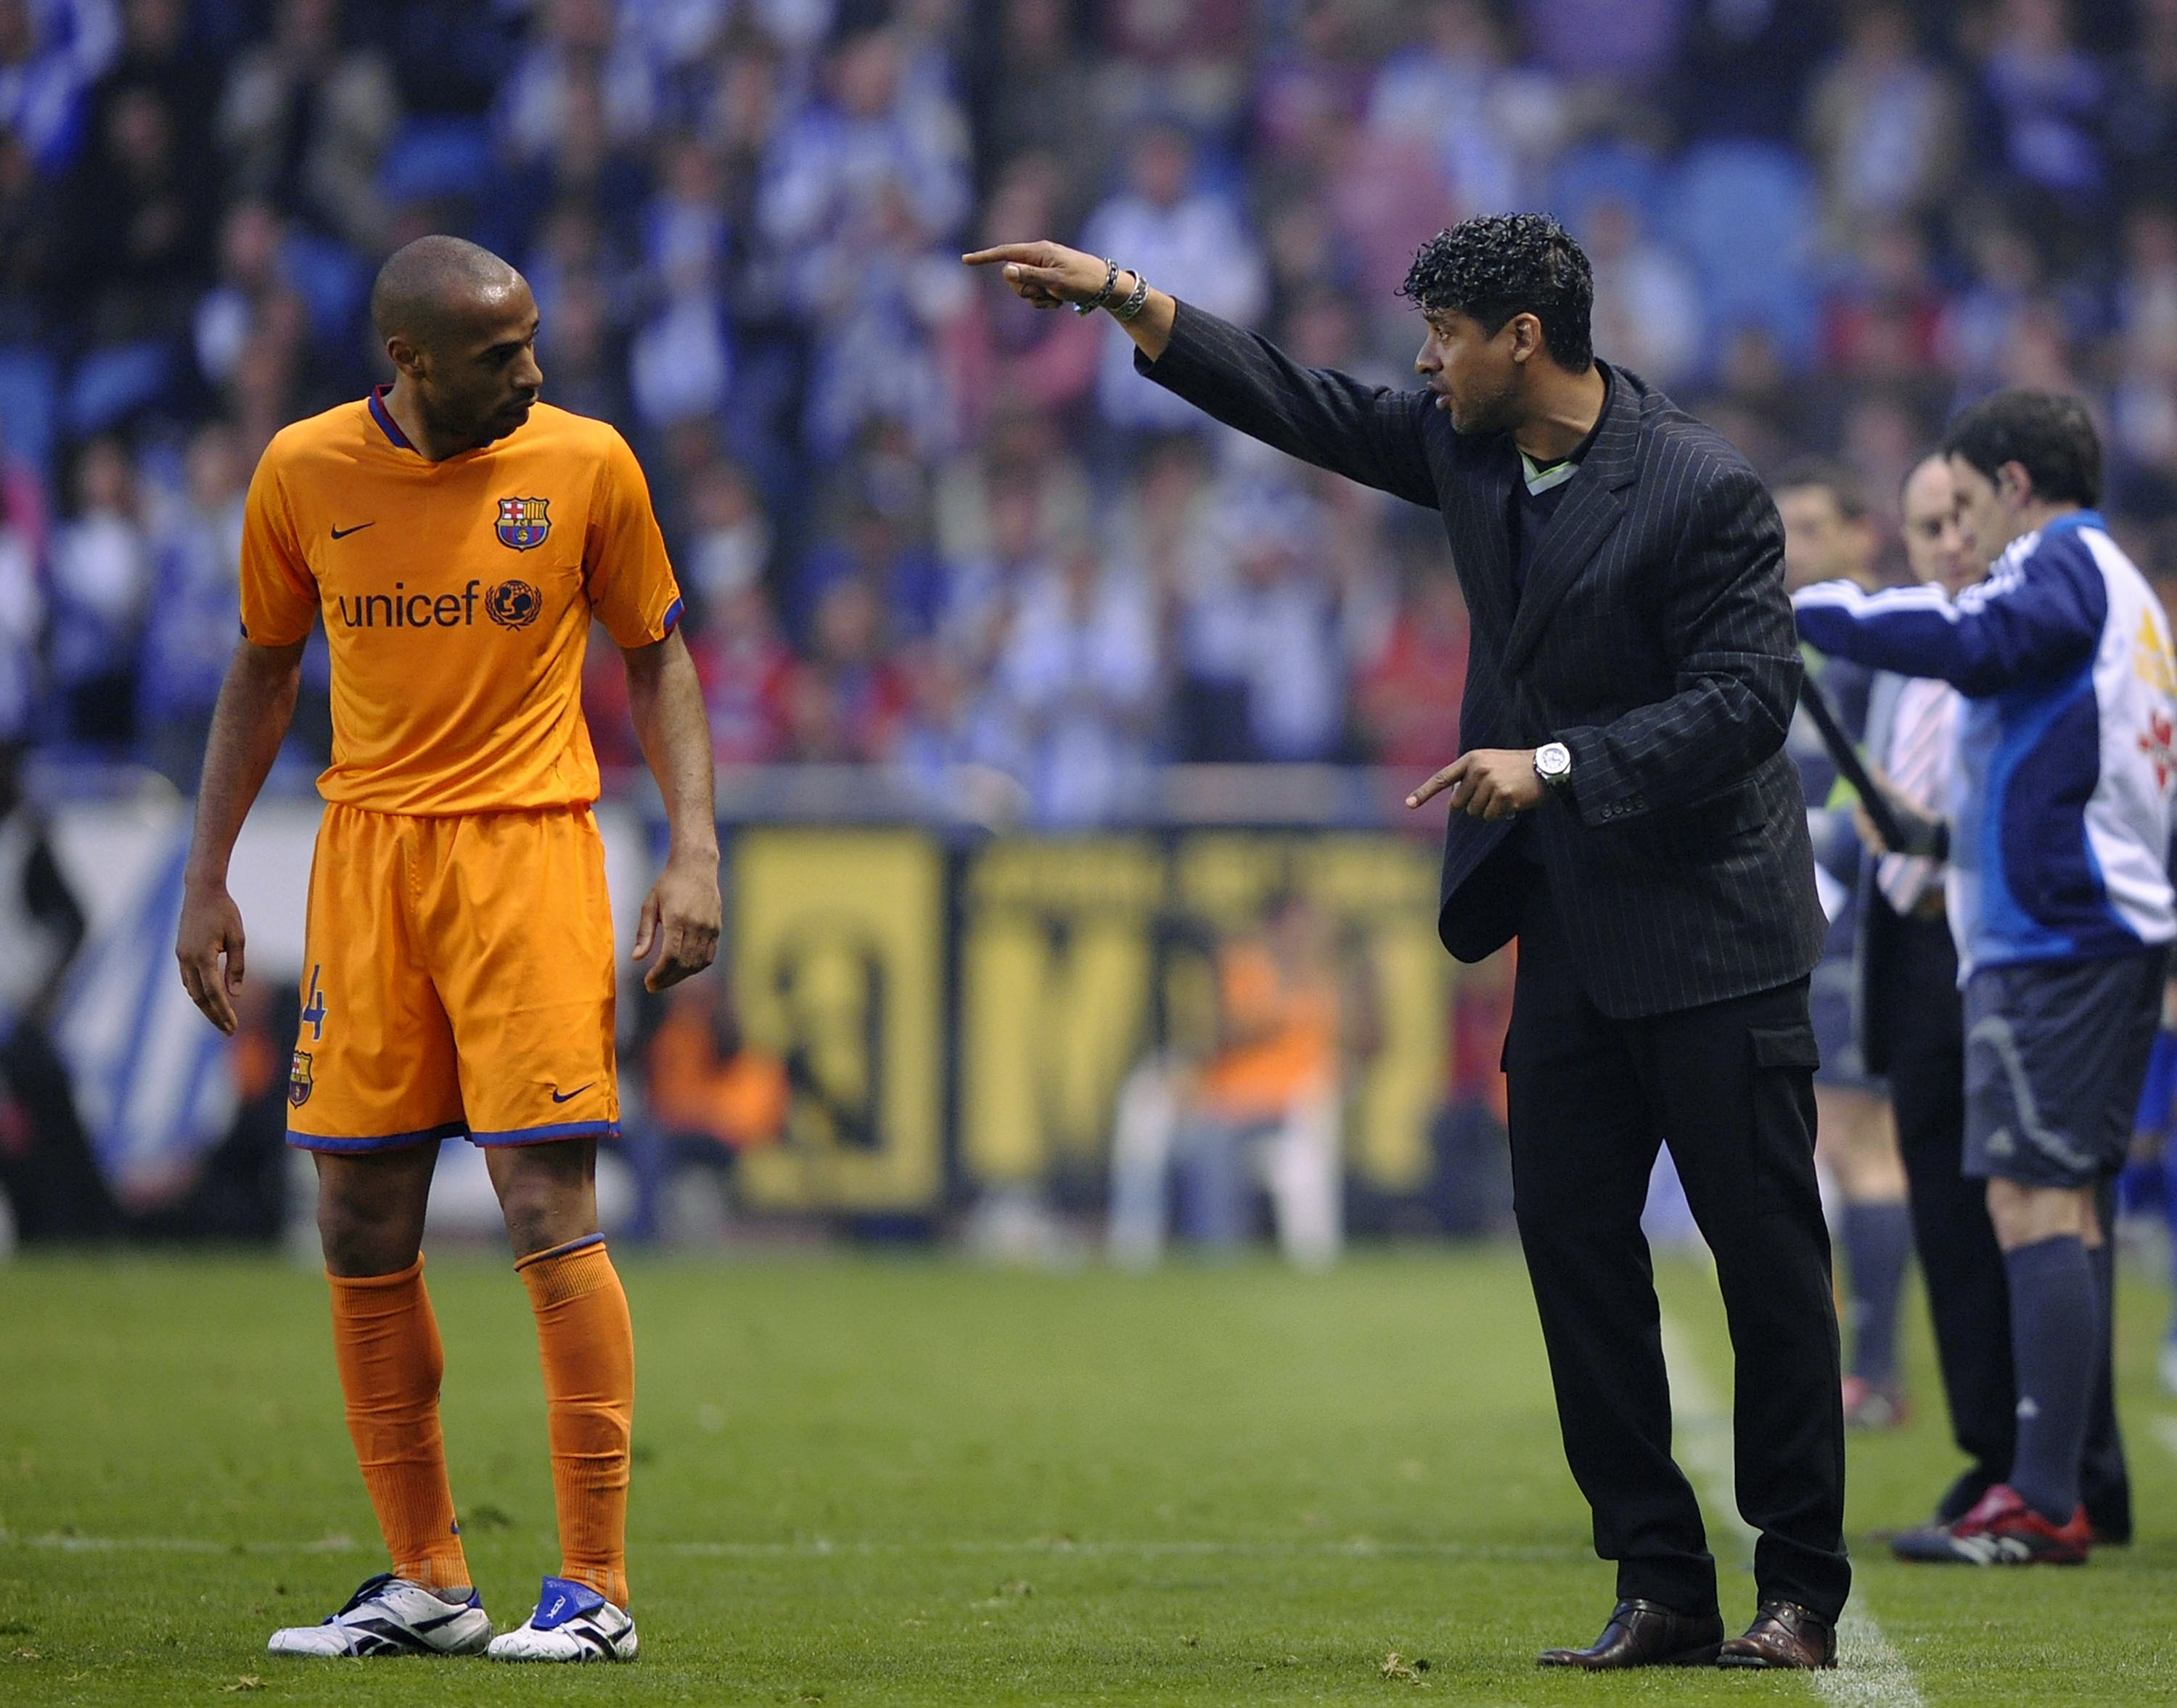 Frank Rijkaard: The sacking might came as the blessings in disguise?